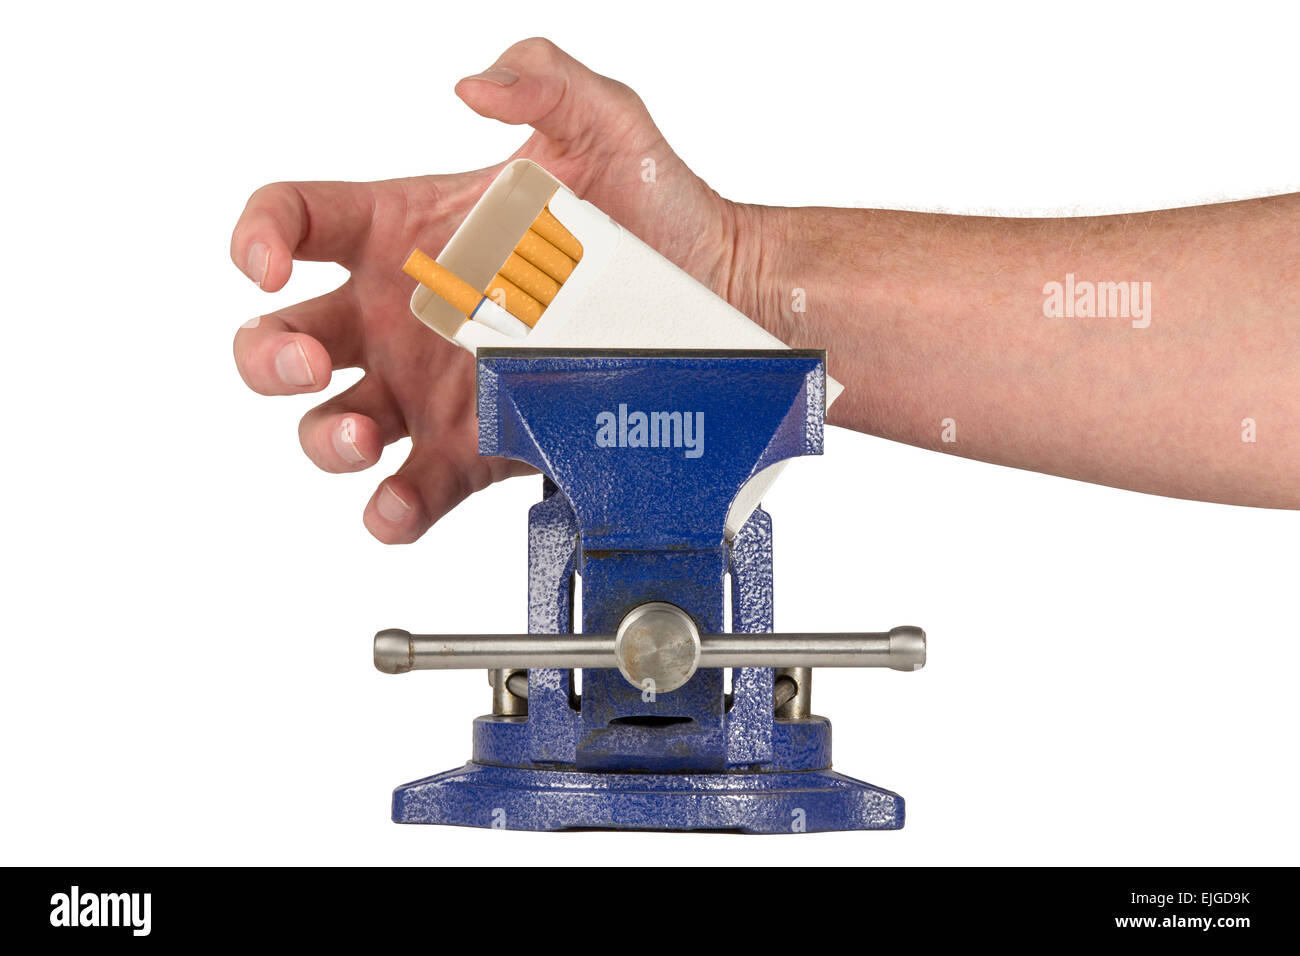 Hand grabbing pack of cigarettes trapped in a vice grip.  Concepts could include vice in a vise, dealing with addiction, - Stock Image